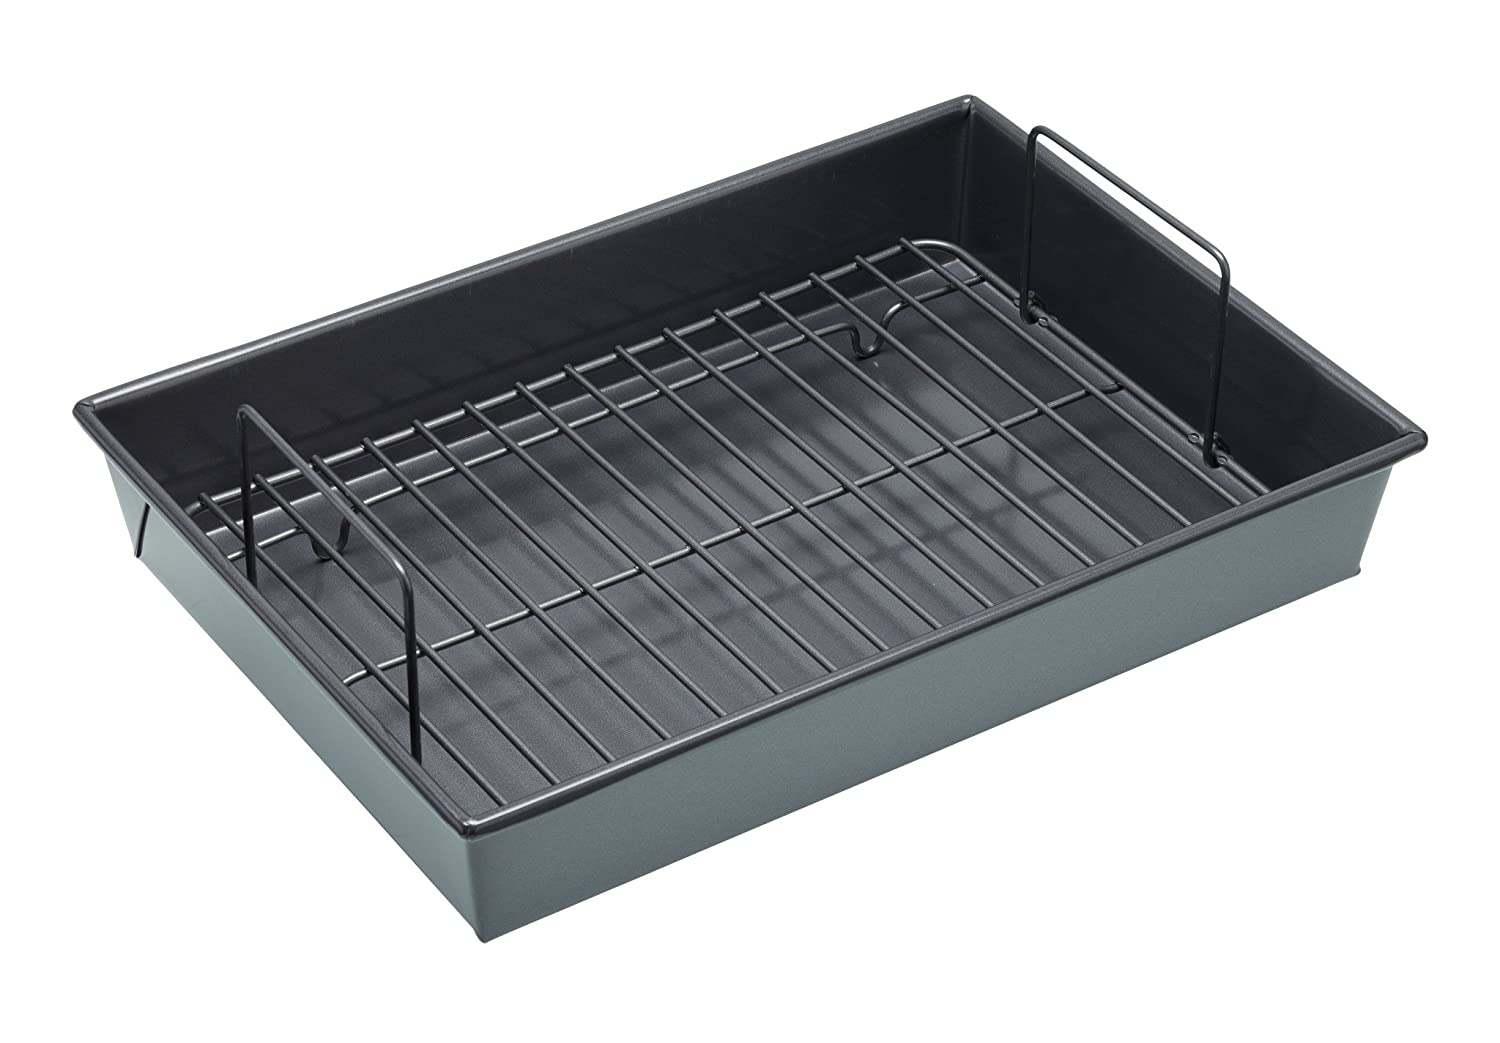 Chicago Metallic Professional Non-Stick Roasting Tin with Rack, 34 x 24 x 6 cm (13.5